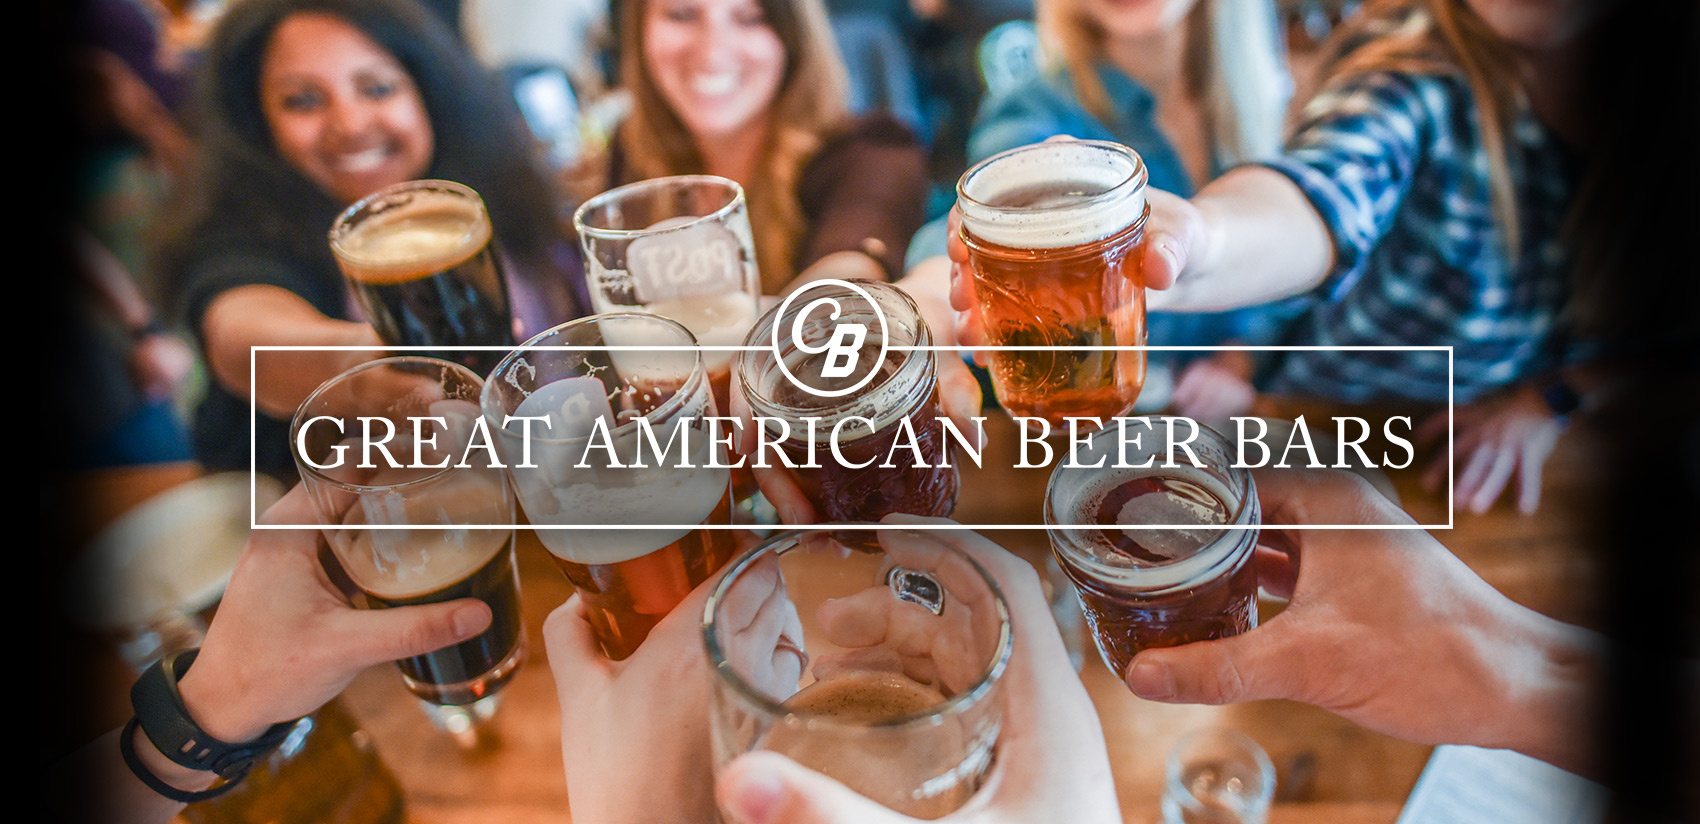 Great American Beer Bars 2019